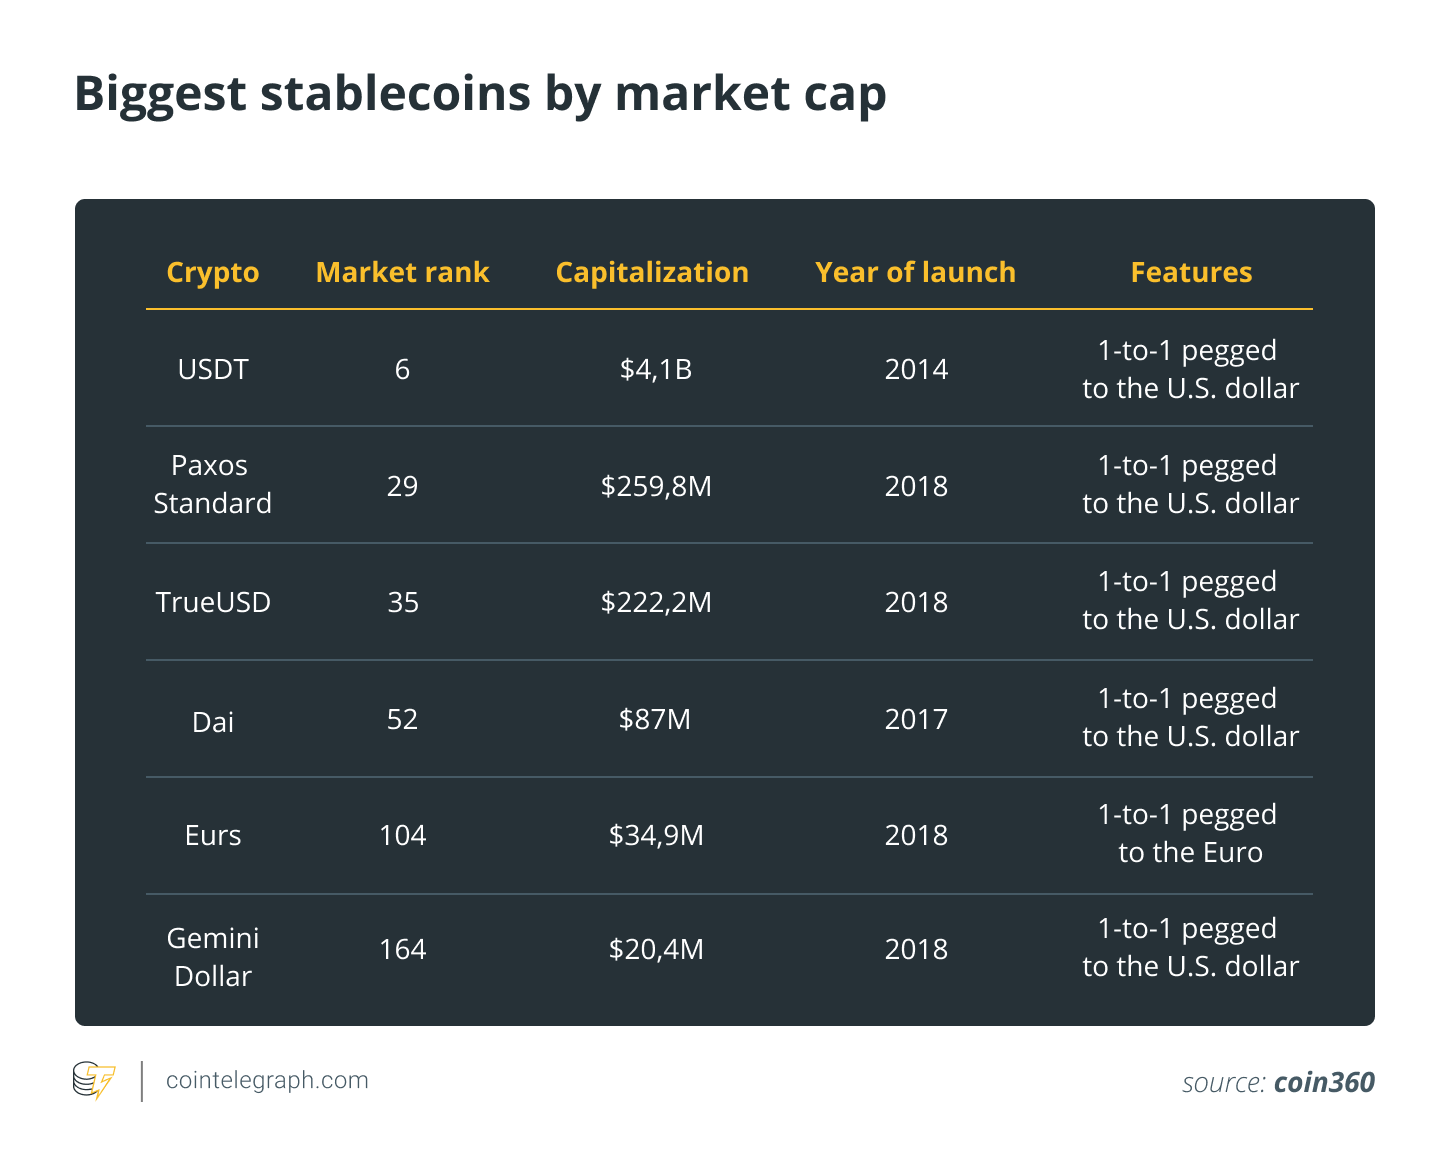 Biggest stablecoins by market cap